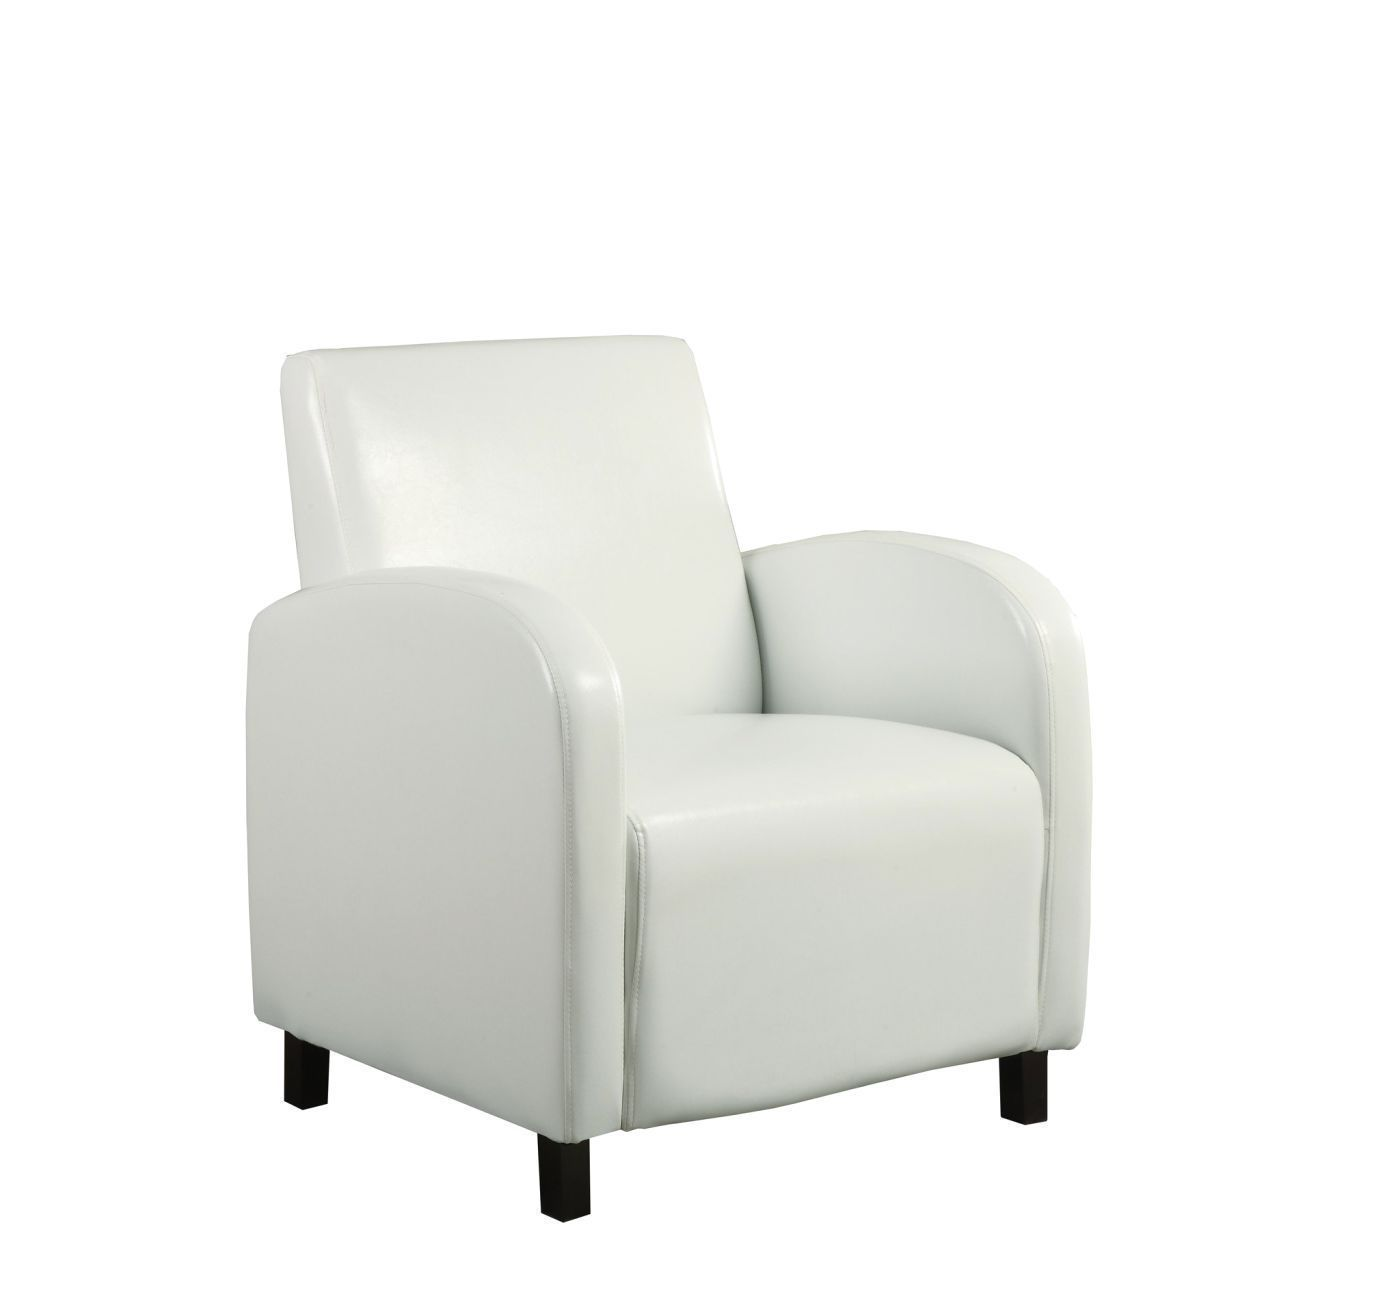 White Leather Look Accent Chair Comfychair Comfy Chairs Small